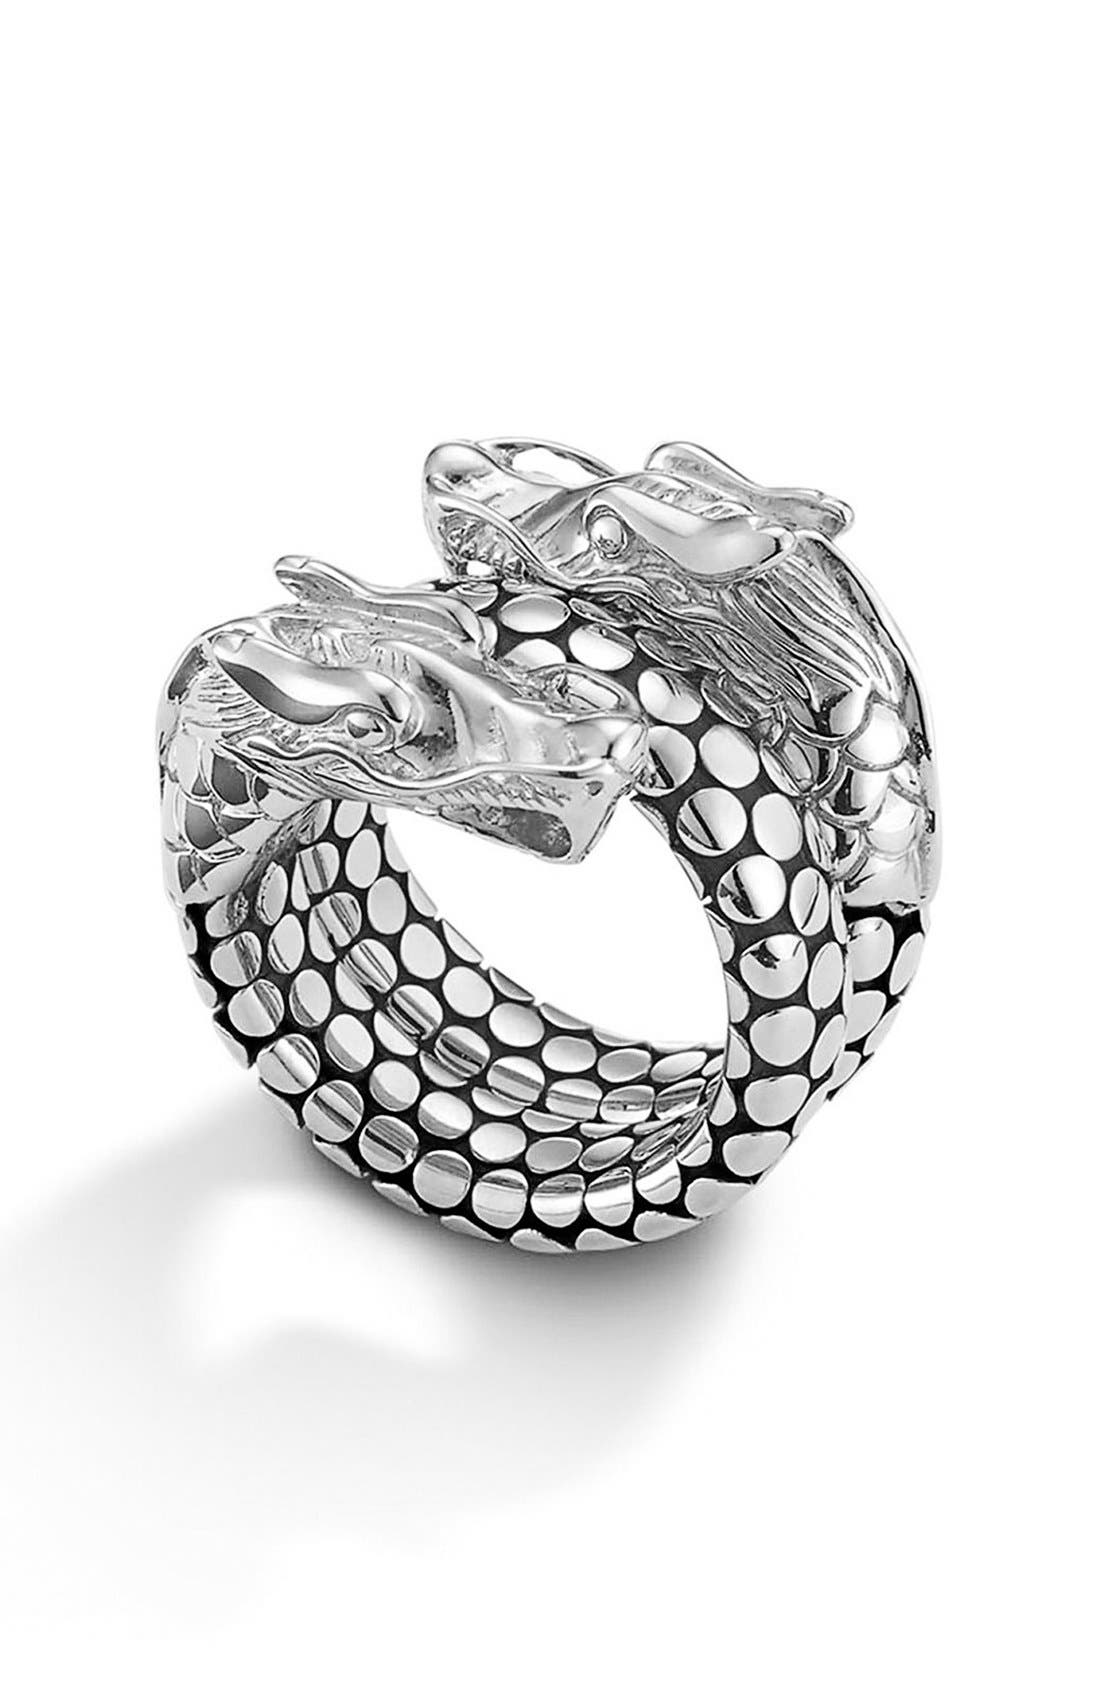 'Legends' Dragon Coil Ring,                             Main thumbnail 1, color,                             STERLING SILVER